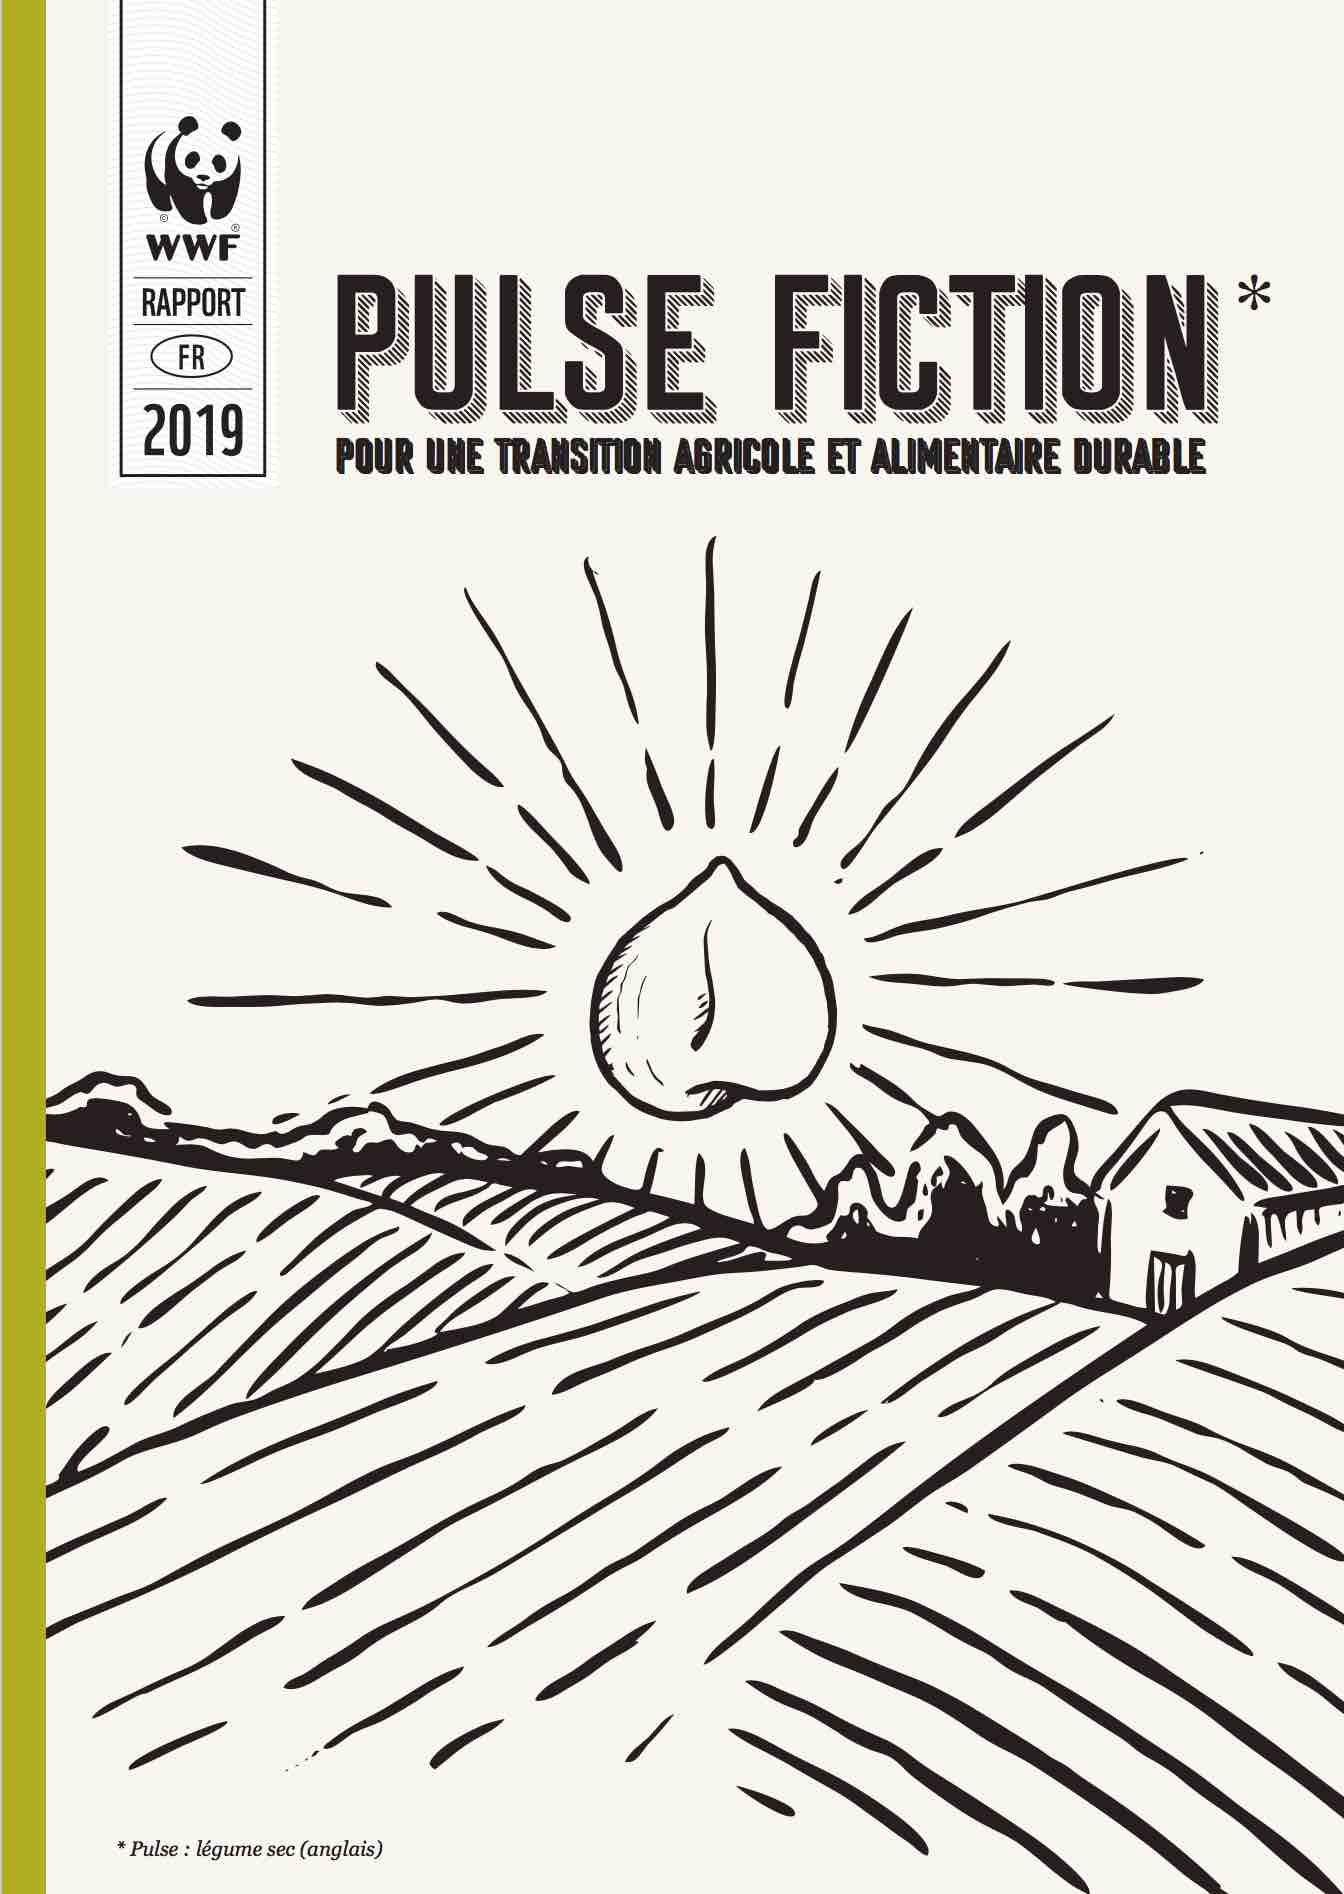 Pulse Fiction WWF